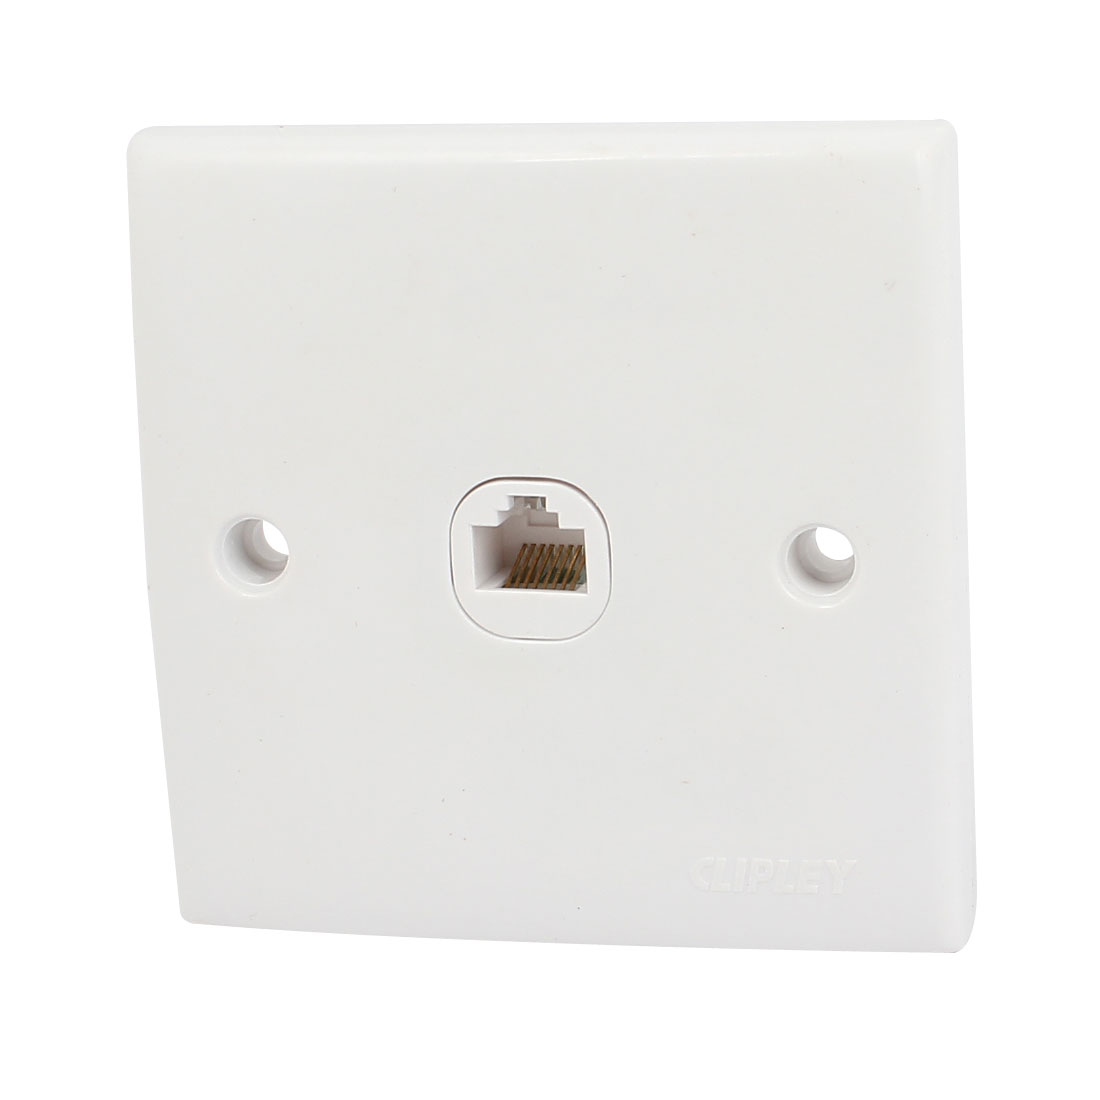 RJ45 8P8C 1 Port Cat5 CAT5e Ethernet Wall Plate Outlet Panel Cover White AC 250V 10A